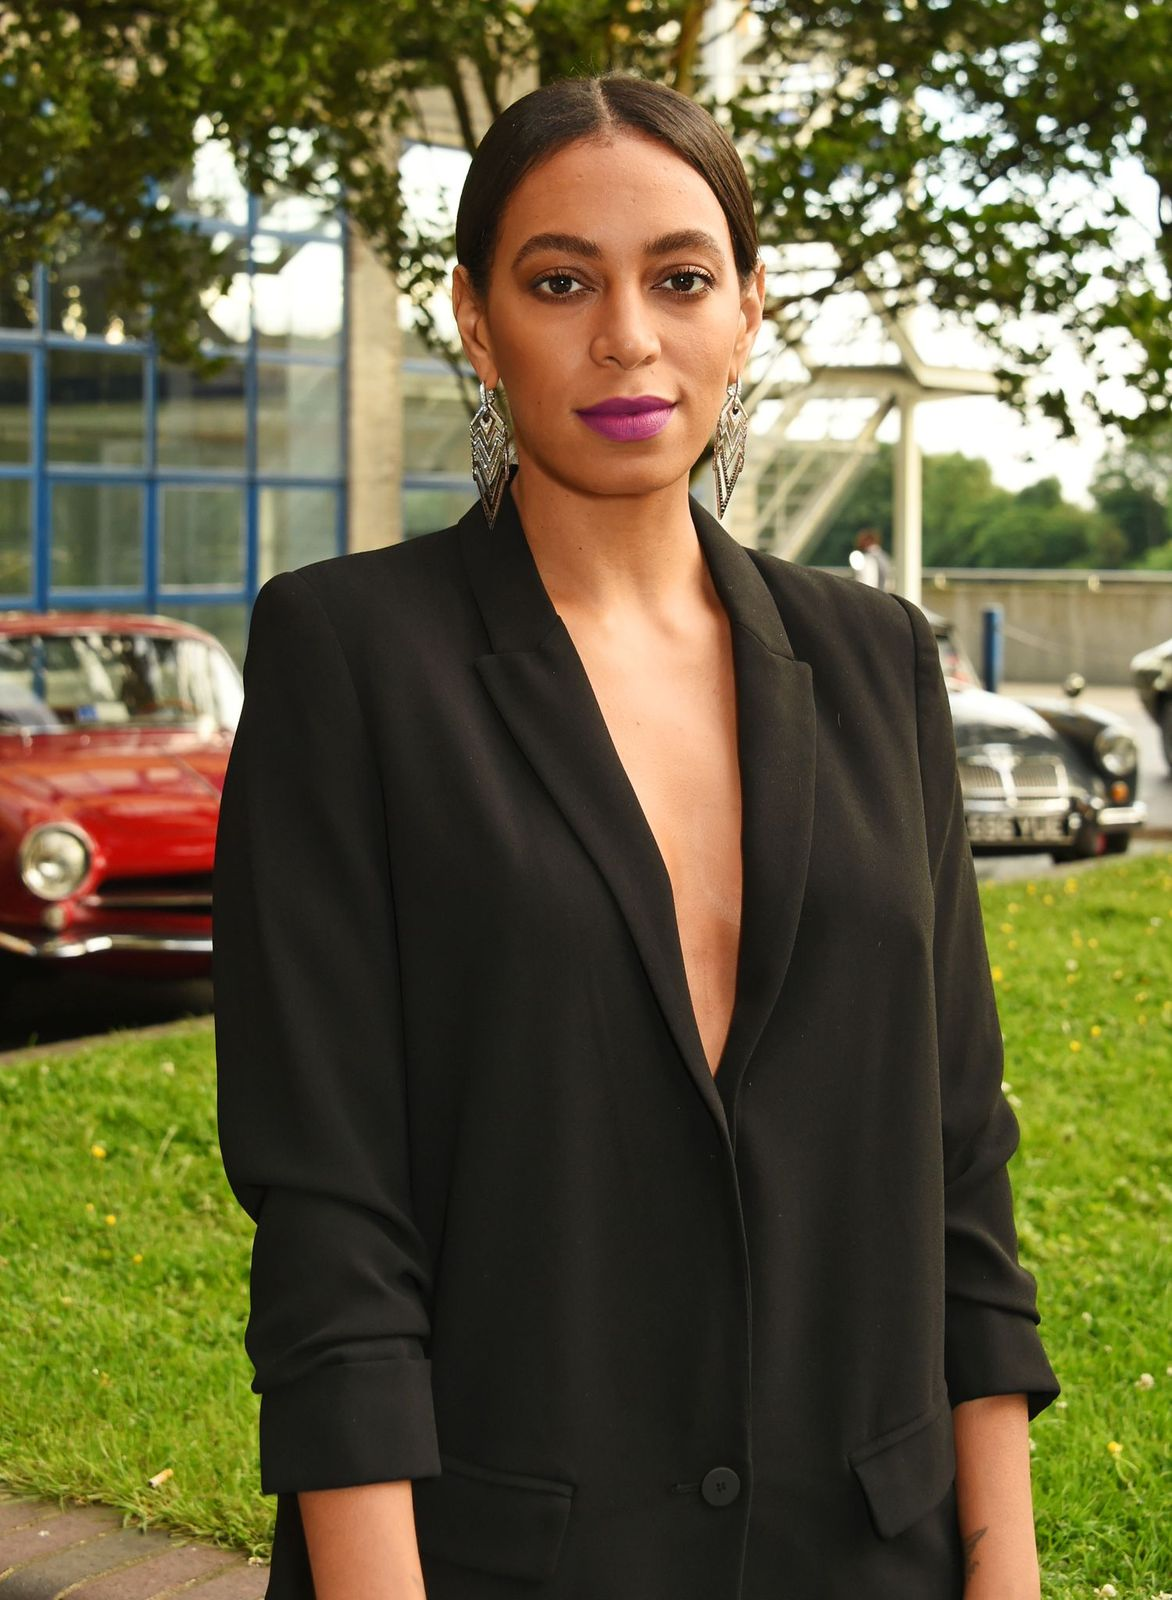 Solange Knowles attends a private dinner hosted by Michael Kors at The River Cafe on June 22, 2016. | Photo: Getty Images